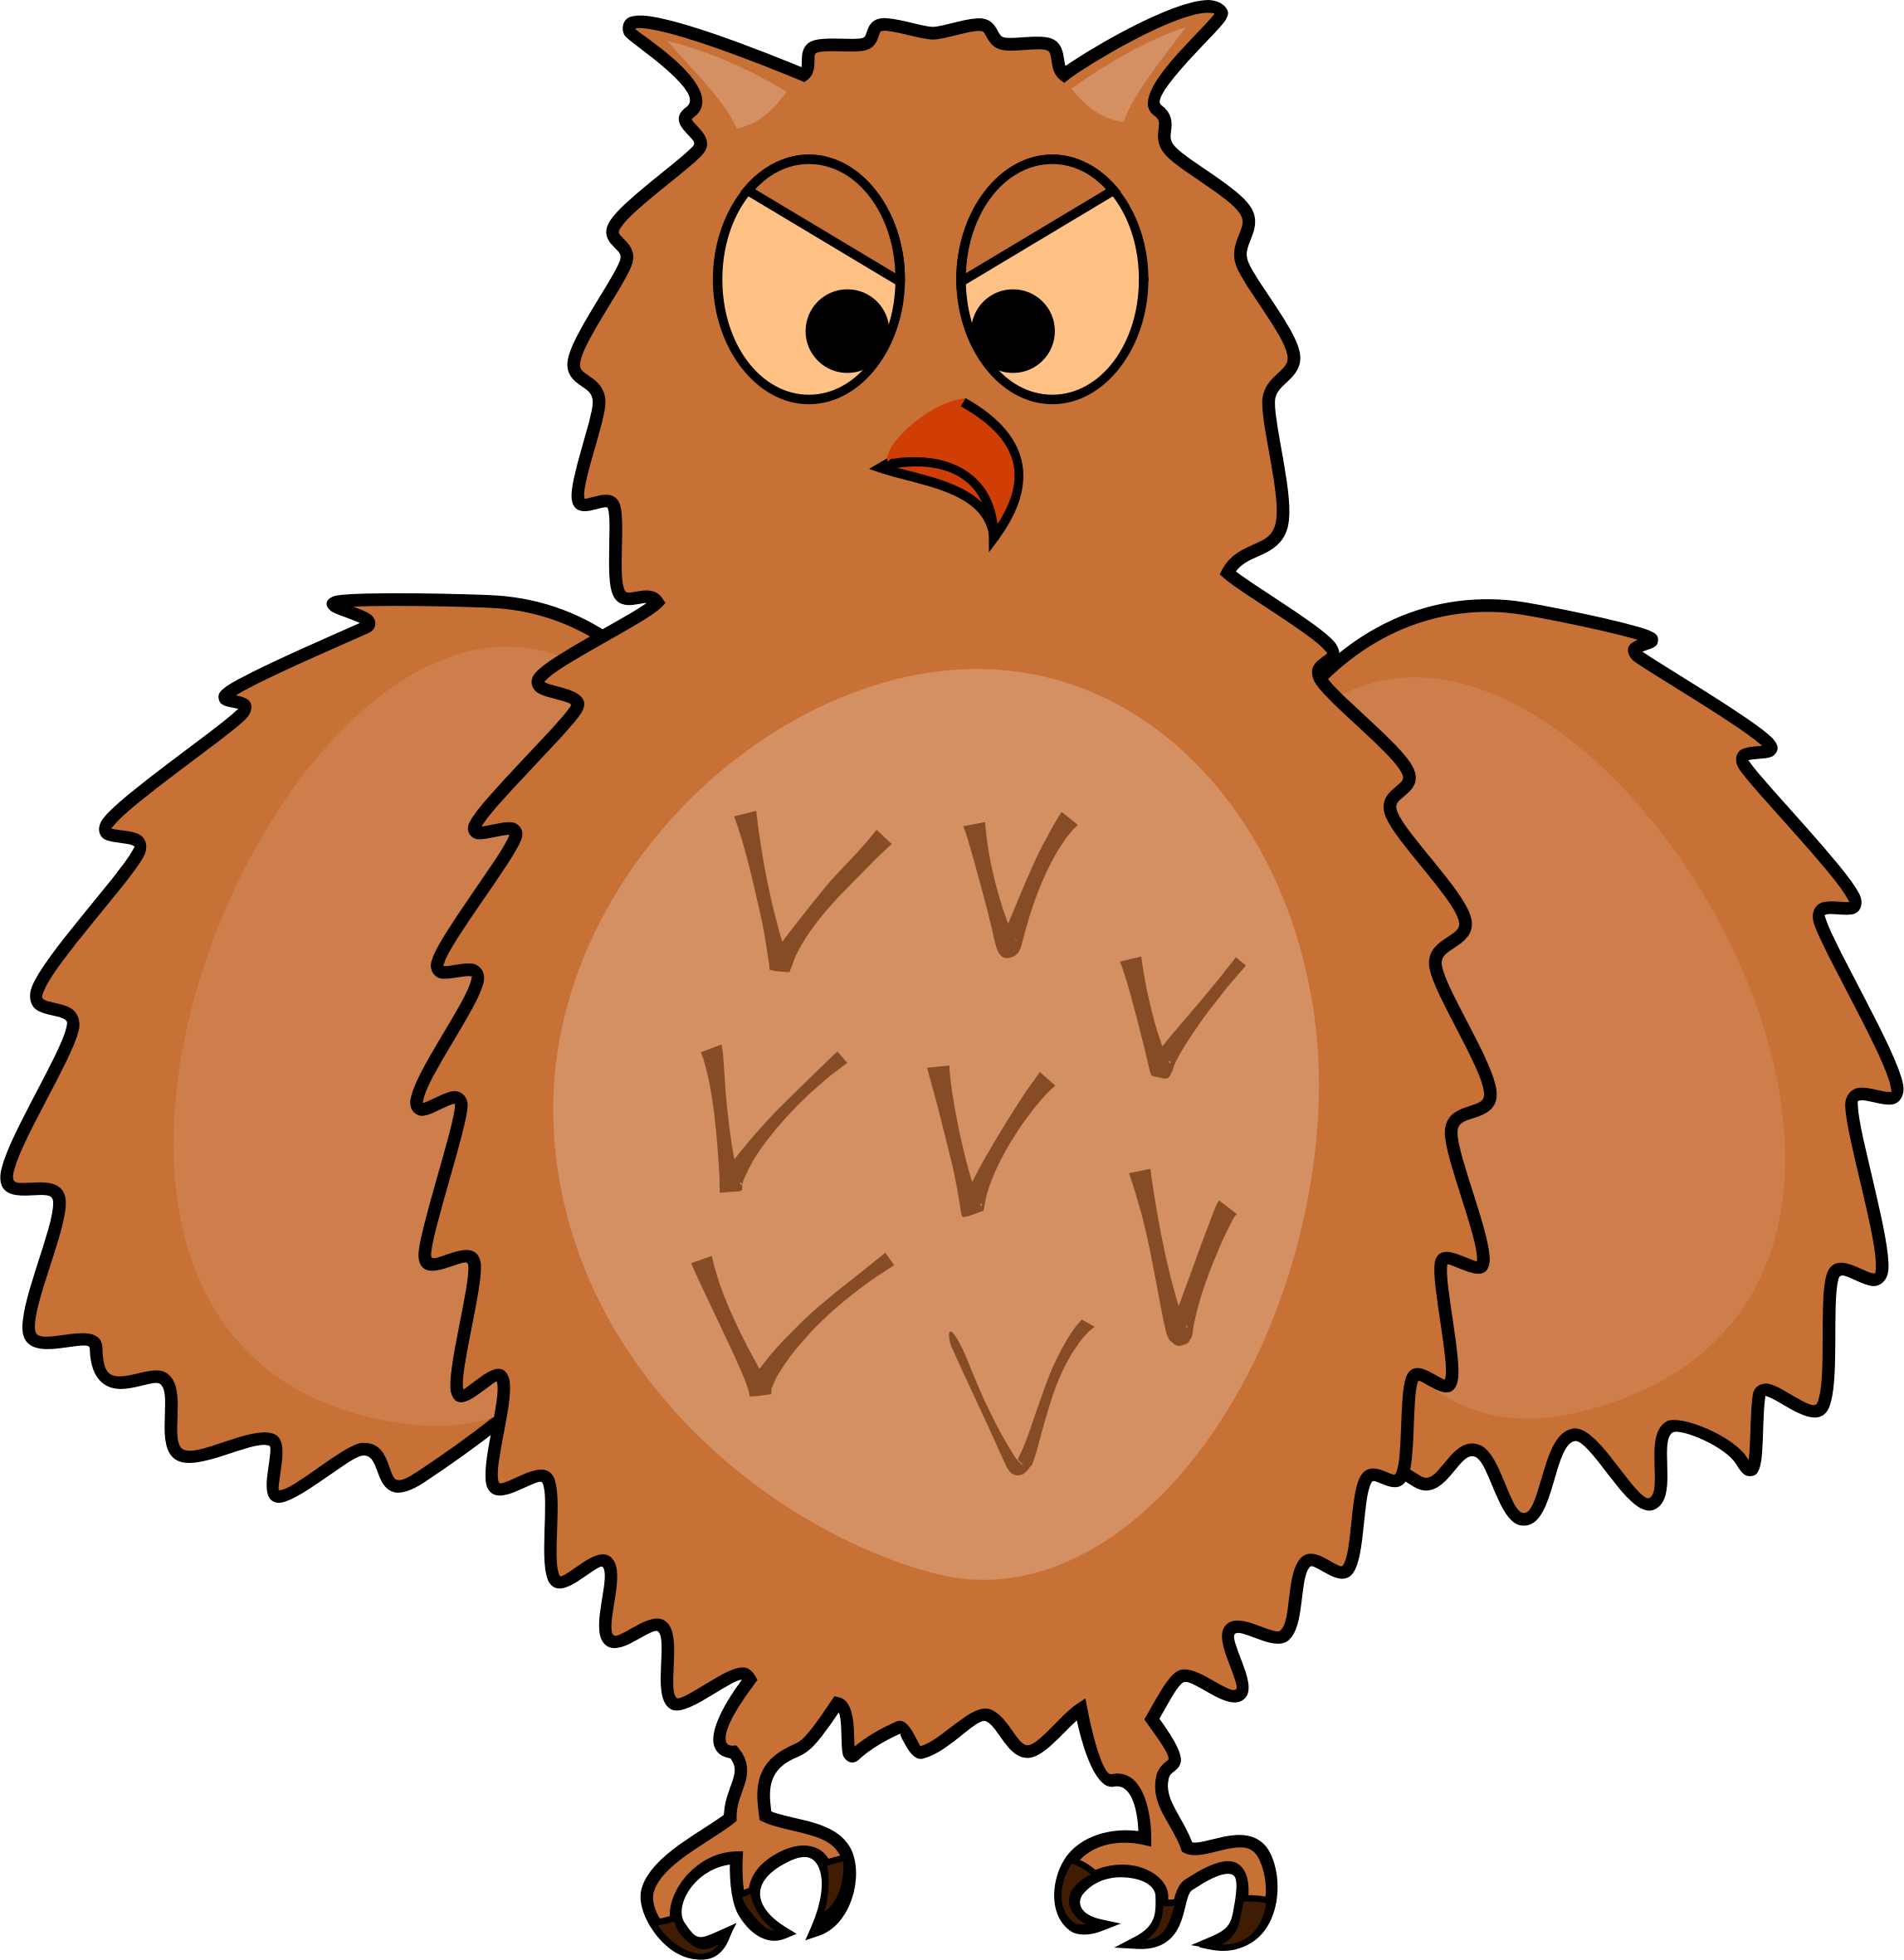 Wing clipart owl. Enraged front view spread